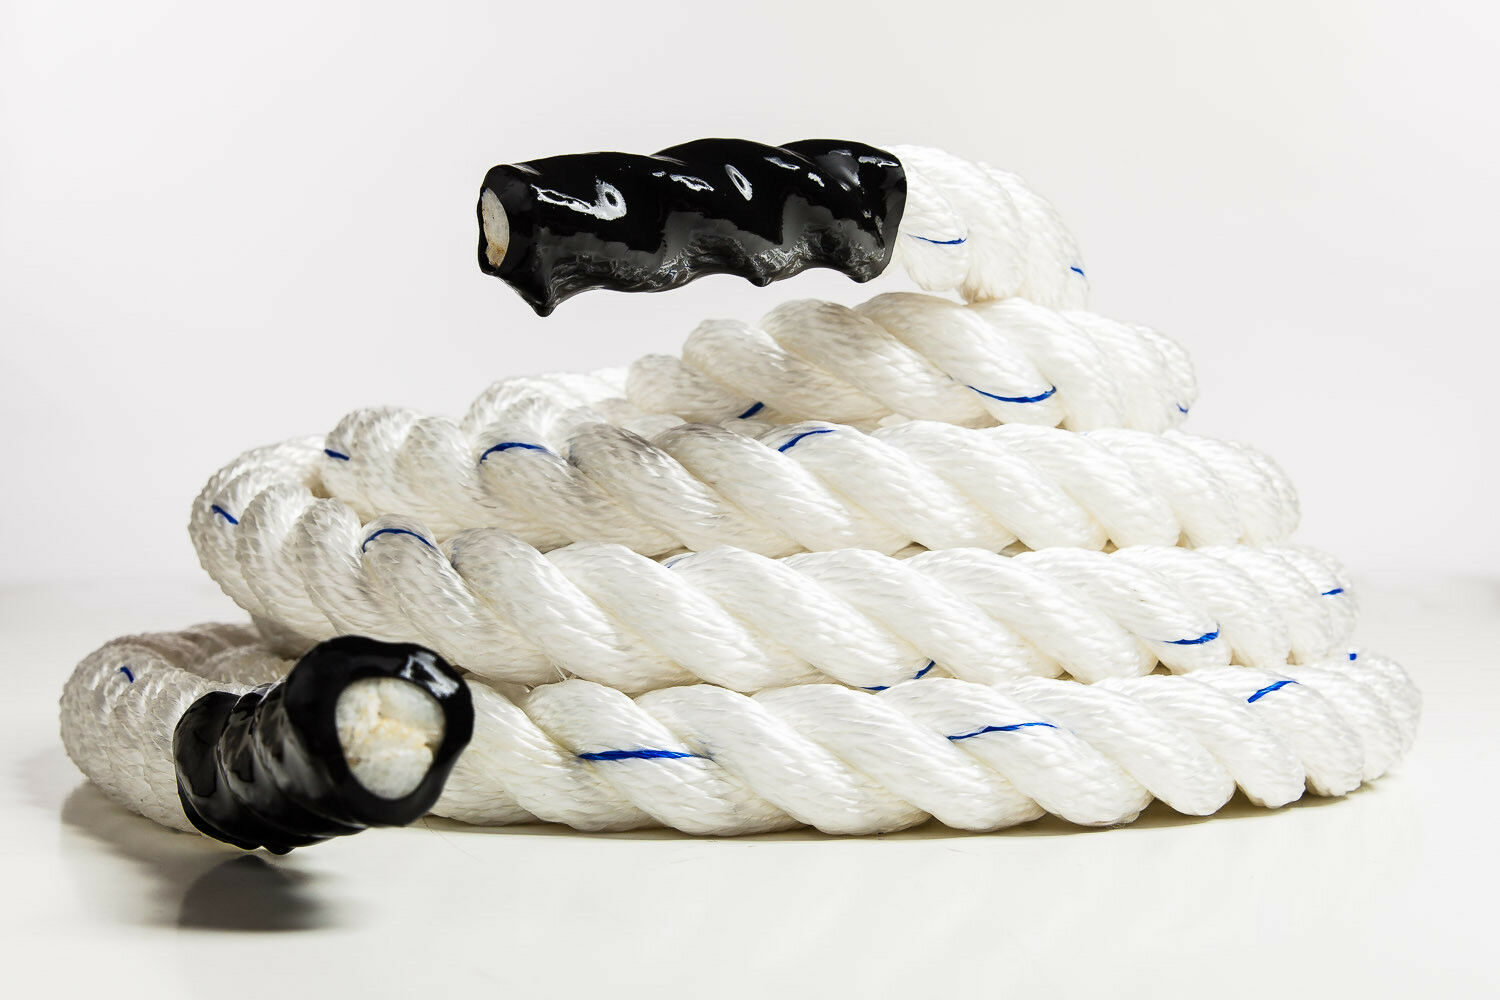 White Battle Crossfit  Training Undulation Fitness Rope (2 in x 16.5-100 ft)  get the latest